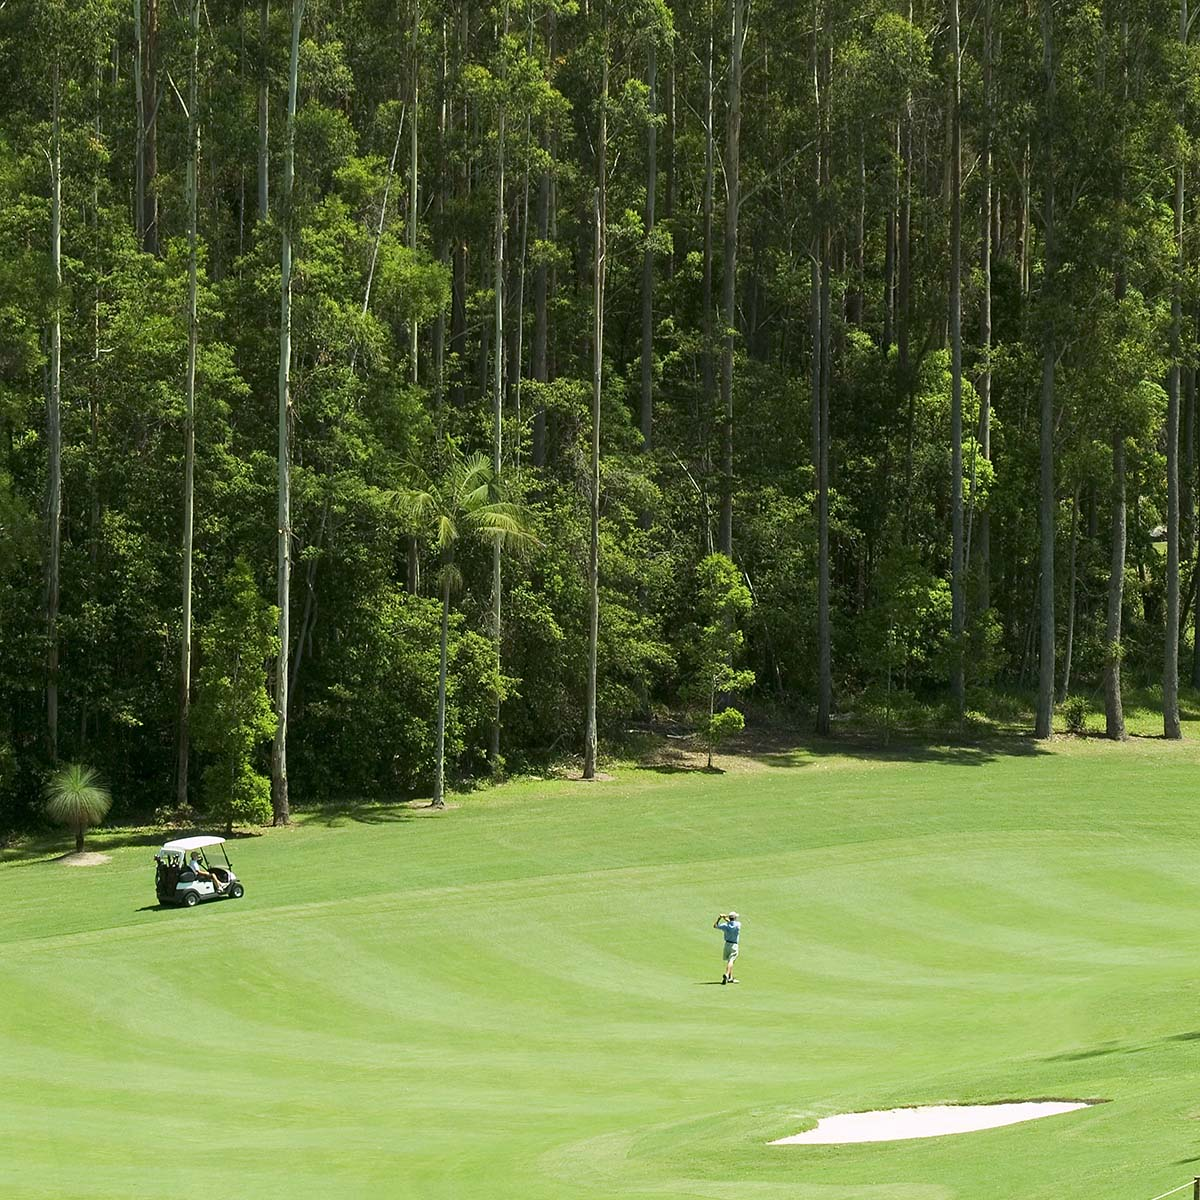 spectacular scenery around the beautiful Bonville Golf Resort